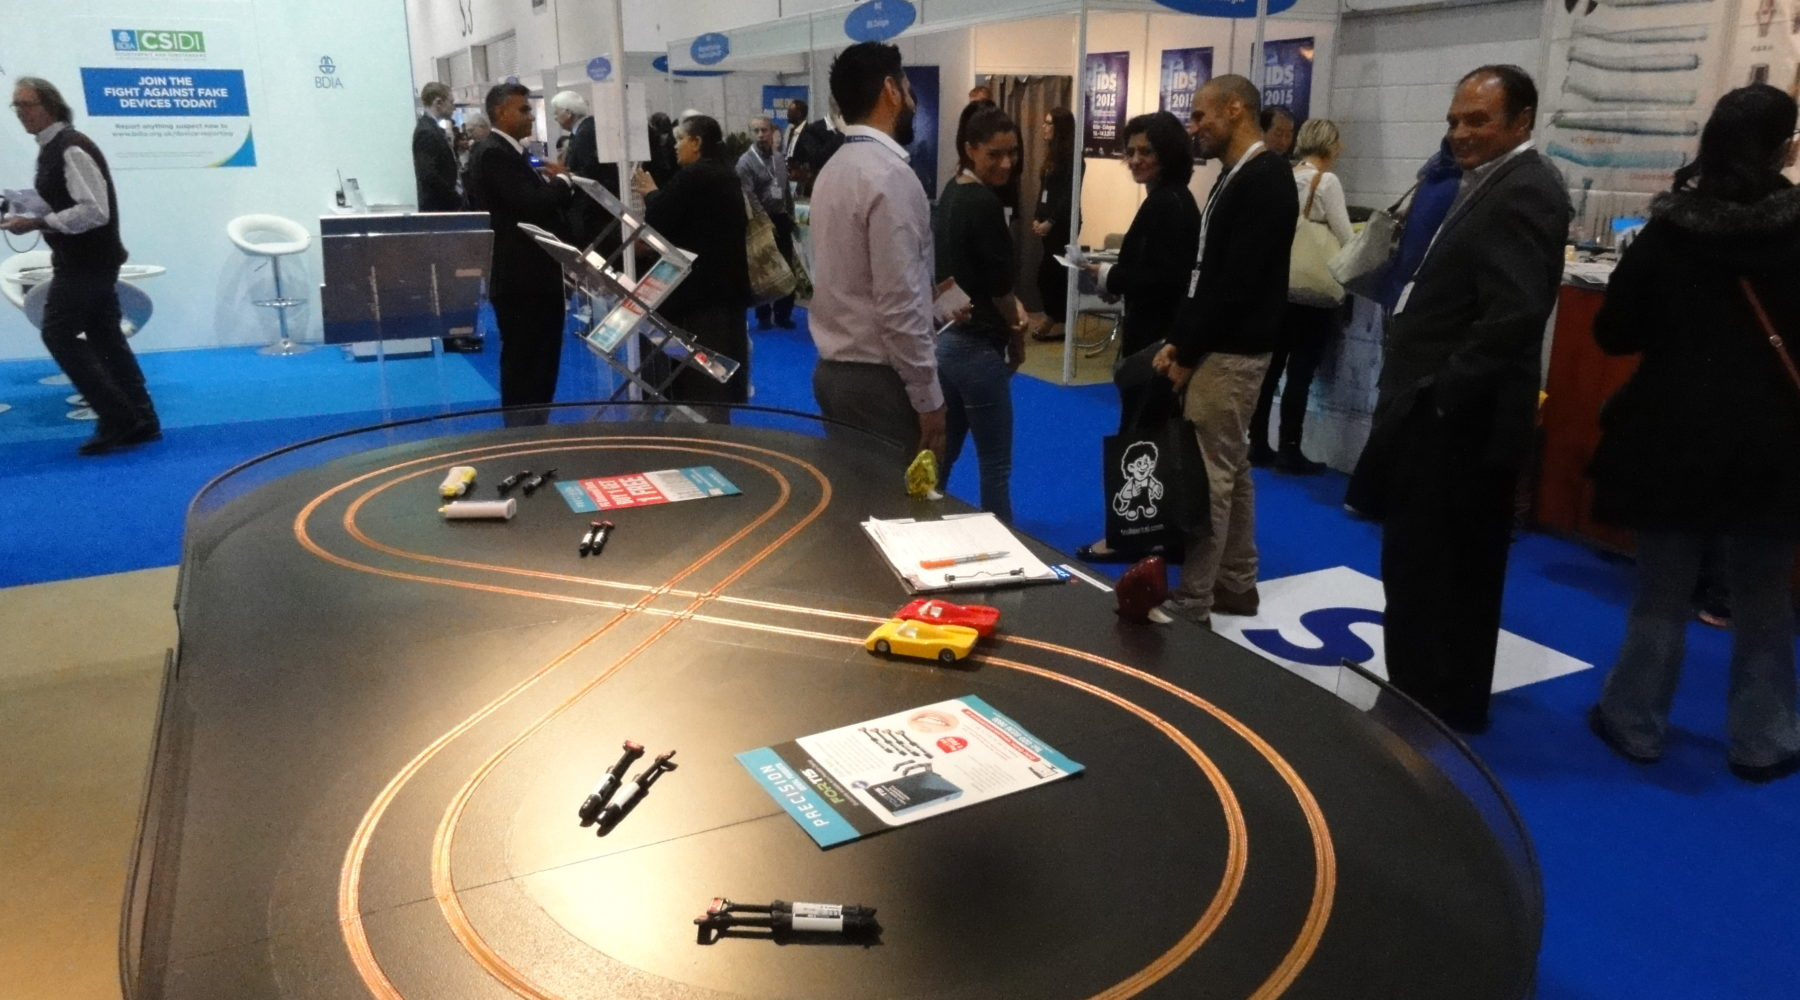 Miniracing Scaelxtric 2 lane track with custom branding on an exhibition stand